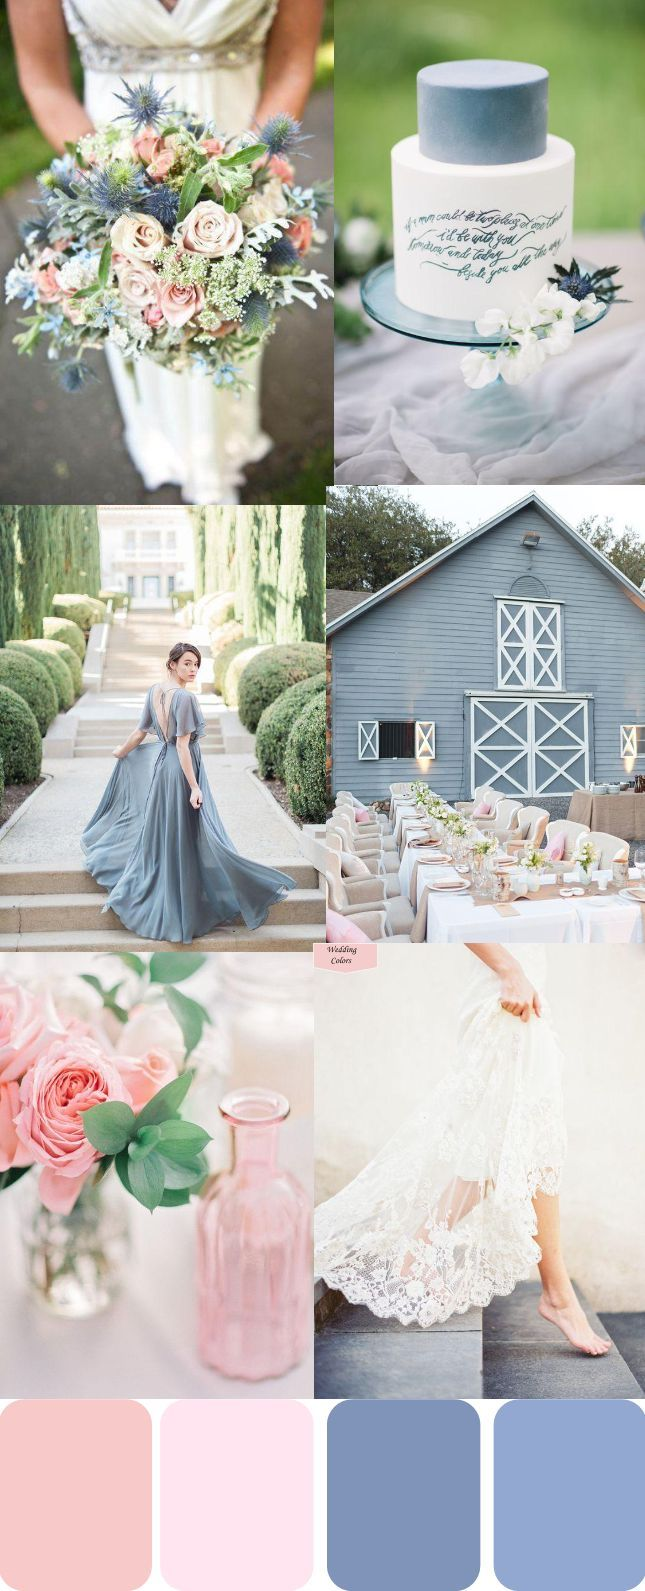 Romantic Rose Quartz and Serenity Wedding Inspiration